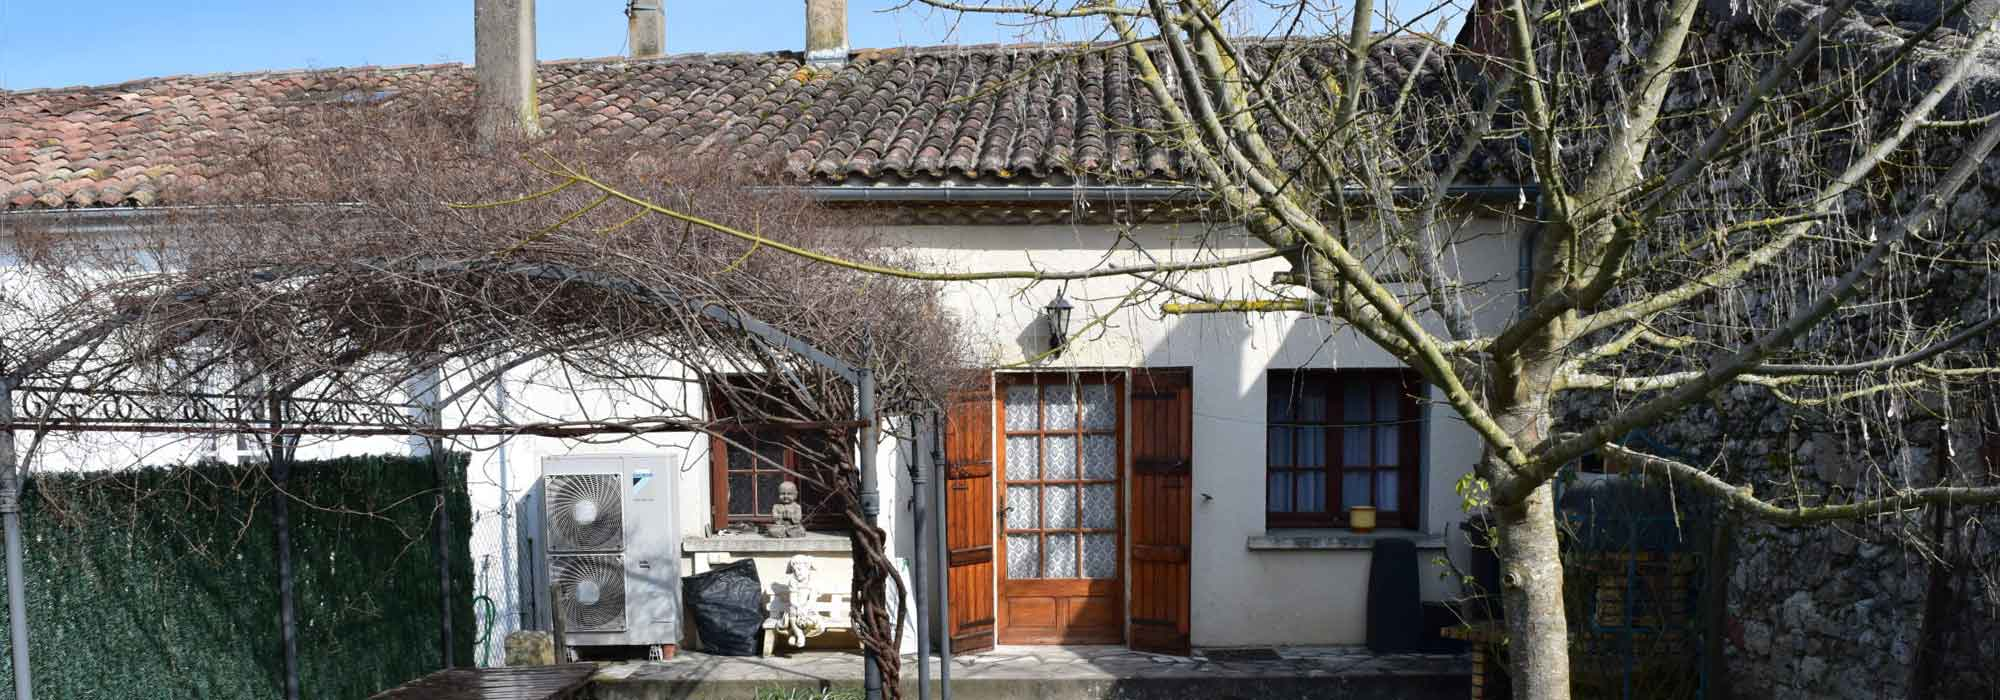 LECTOURE – CHARMING TOWNHOUSE 100 M² – 3BEDS – GARDEN